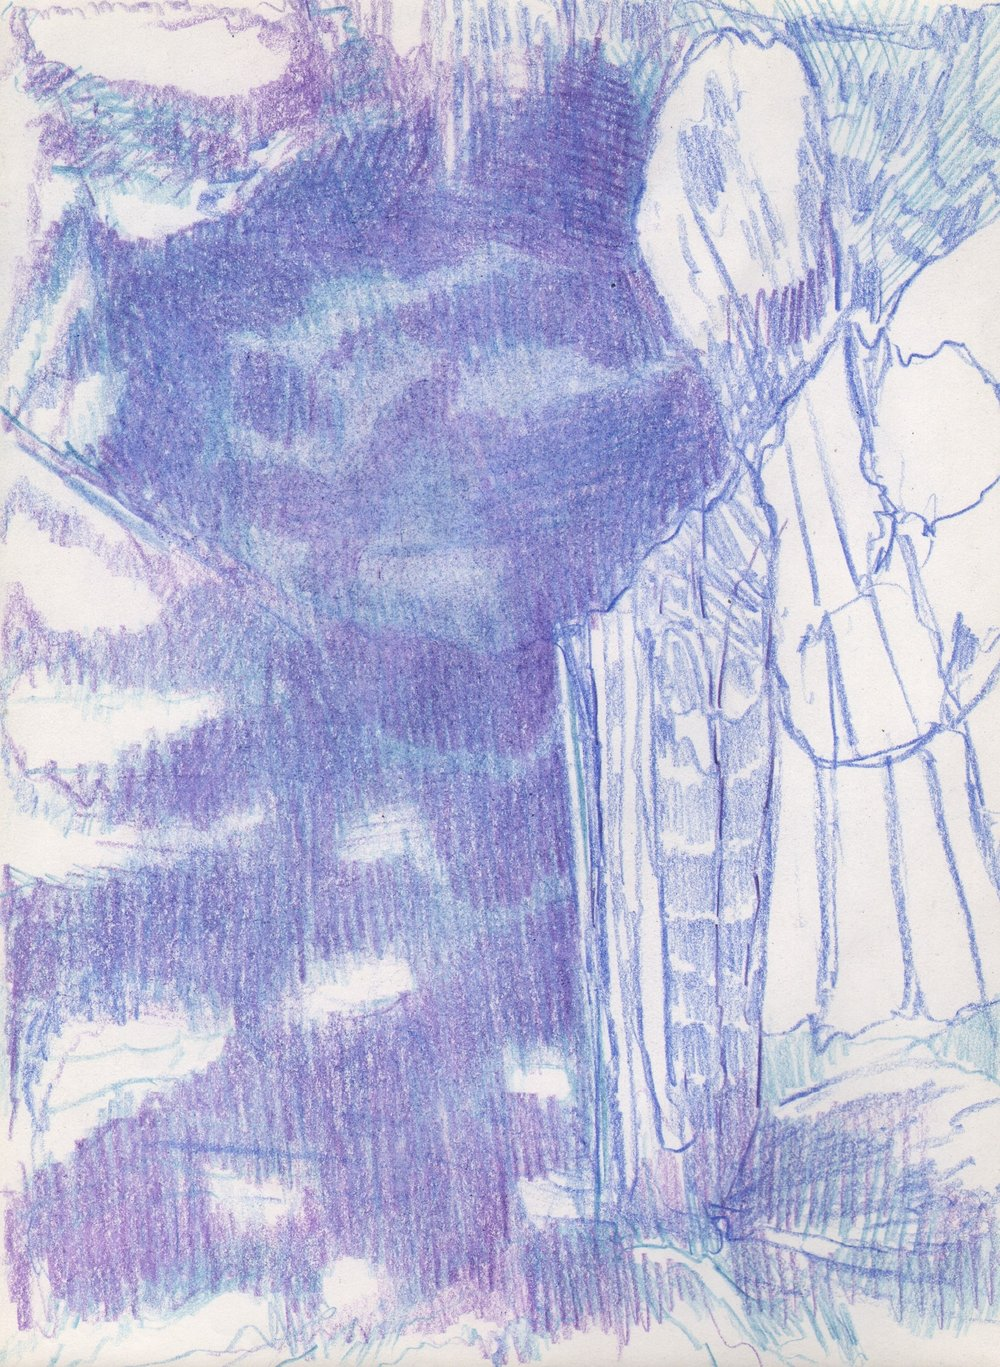 Blue Light, Shadow Creature, 2015, 8 x 6 inches, pencil on paper